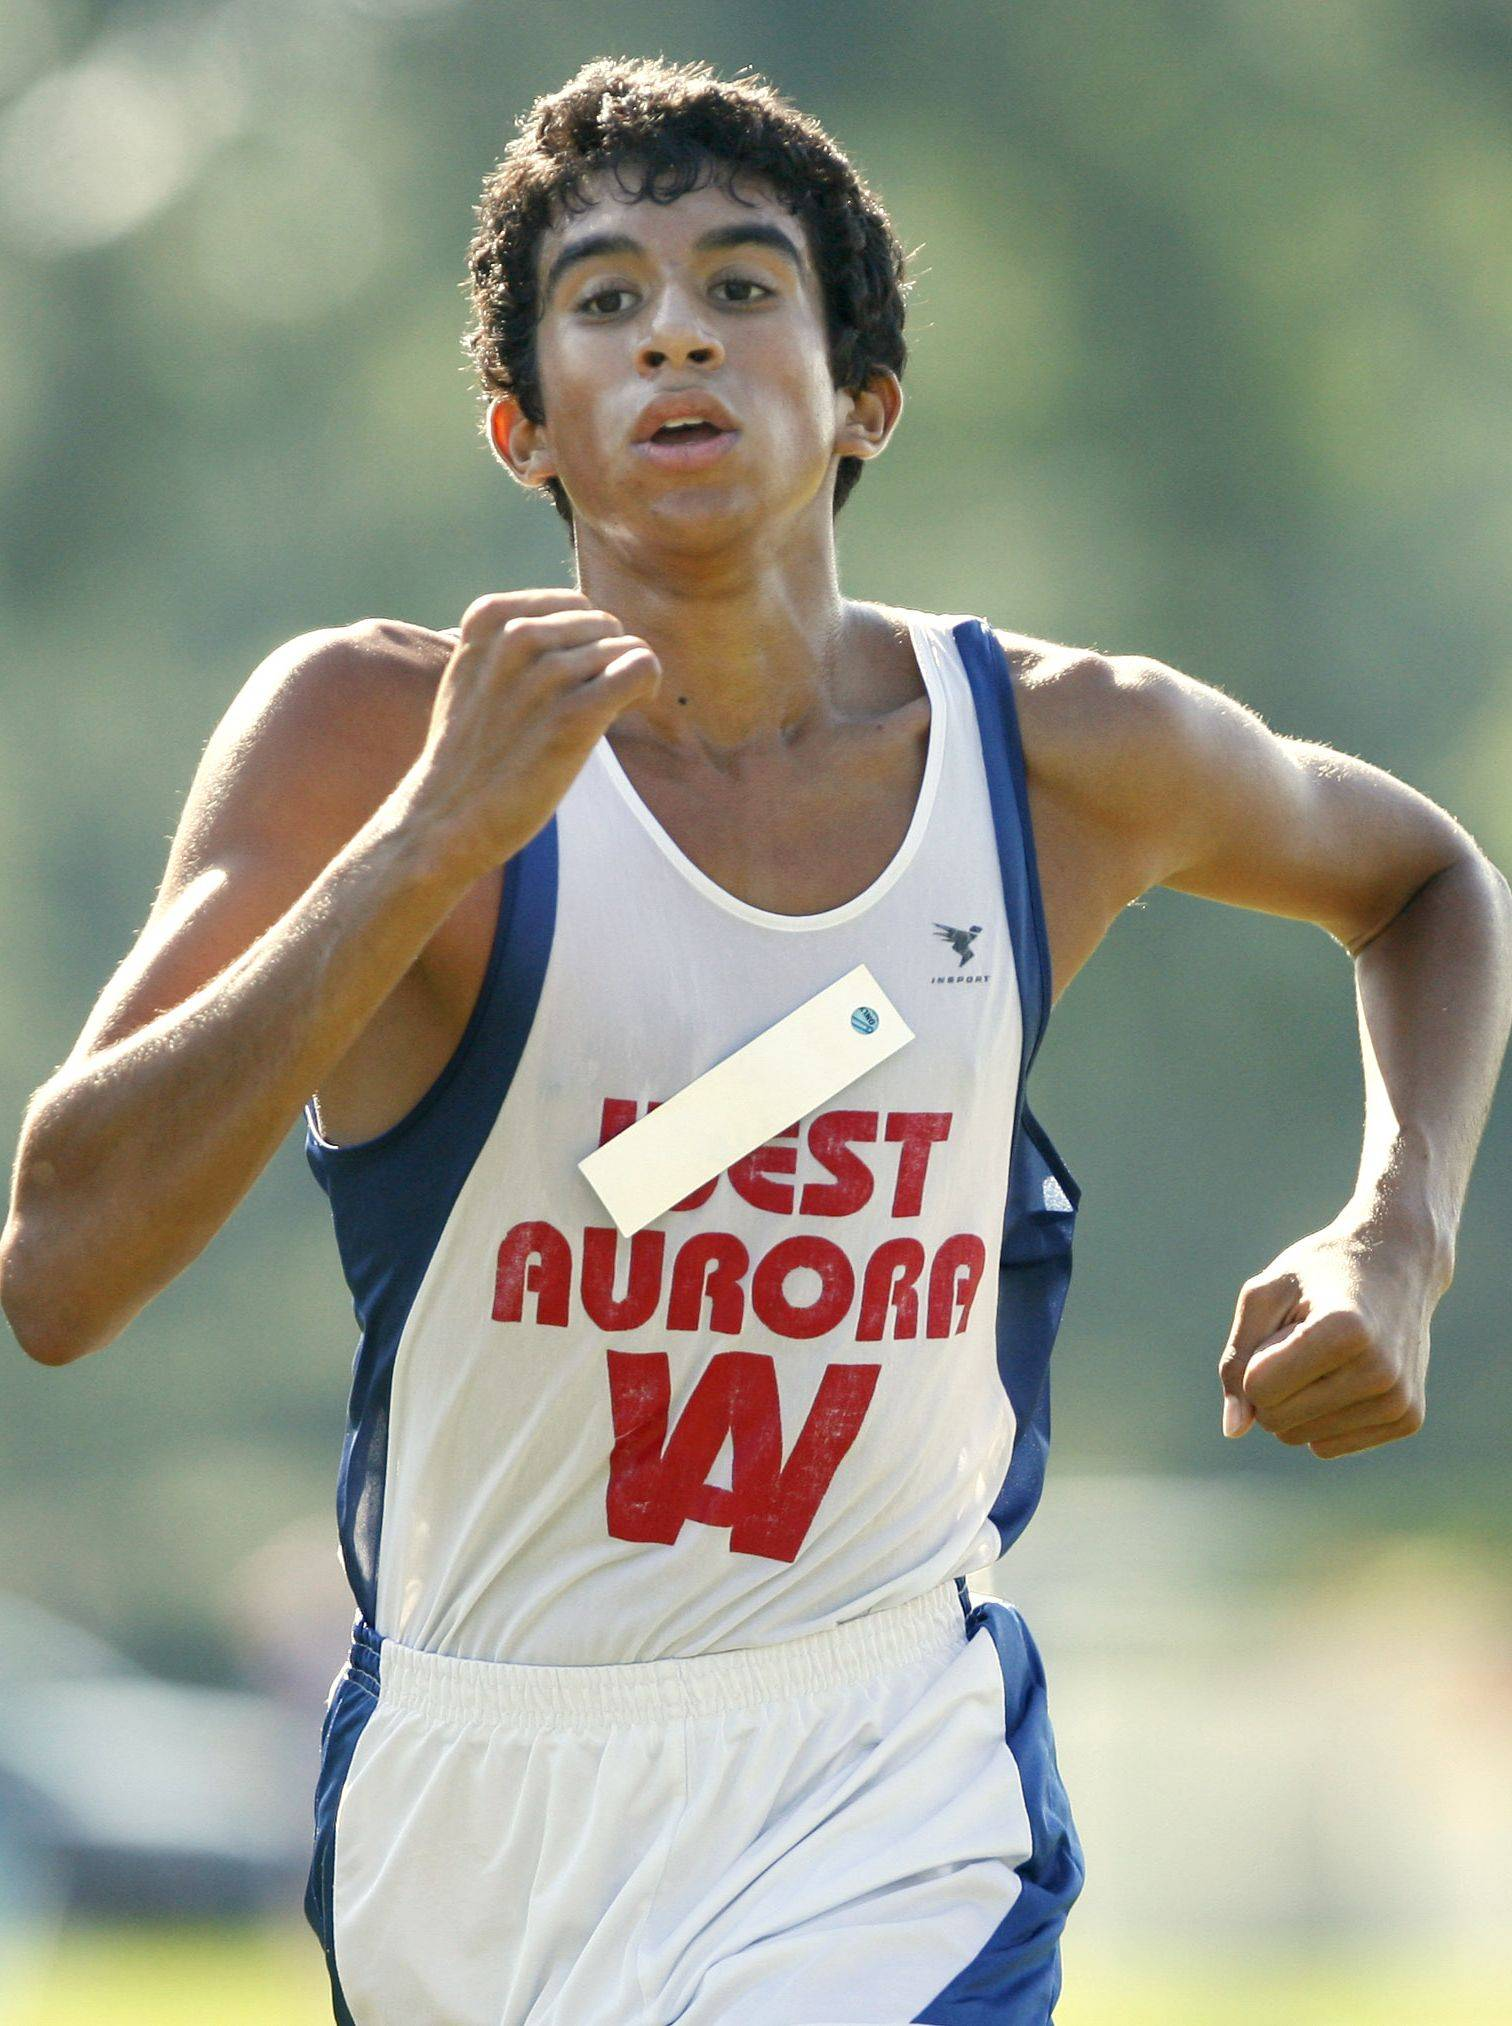 West Aurora junior Omar Gomez opened the season Saturday by winning the Aurora City meet.